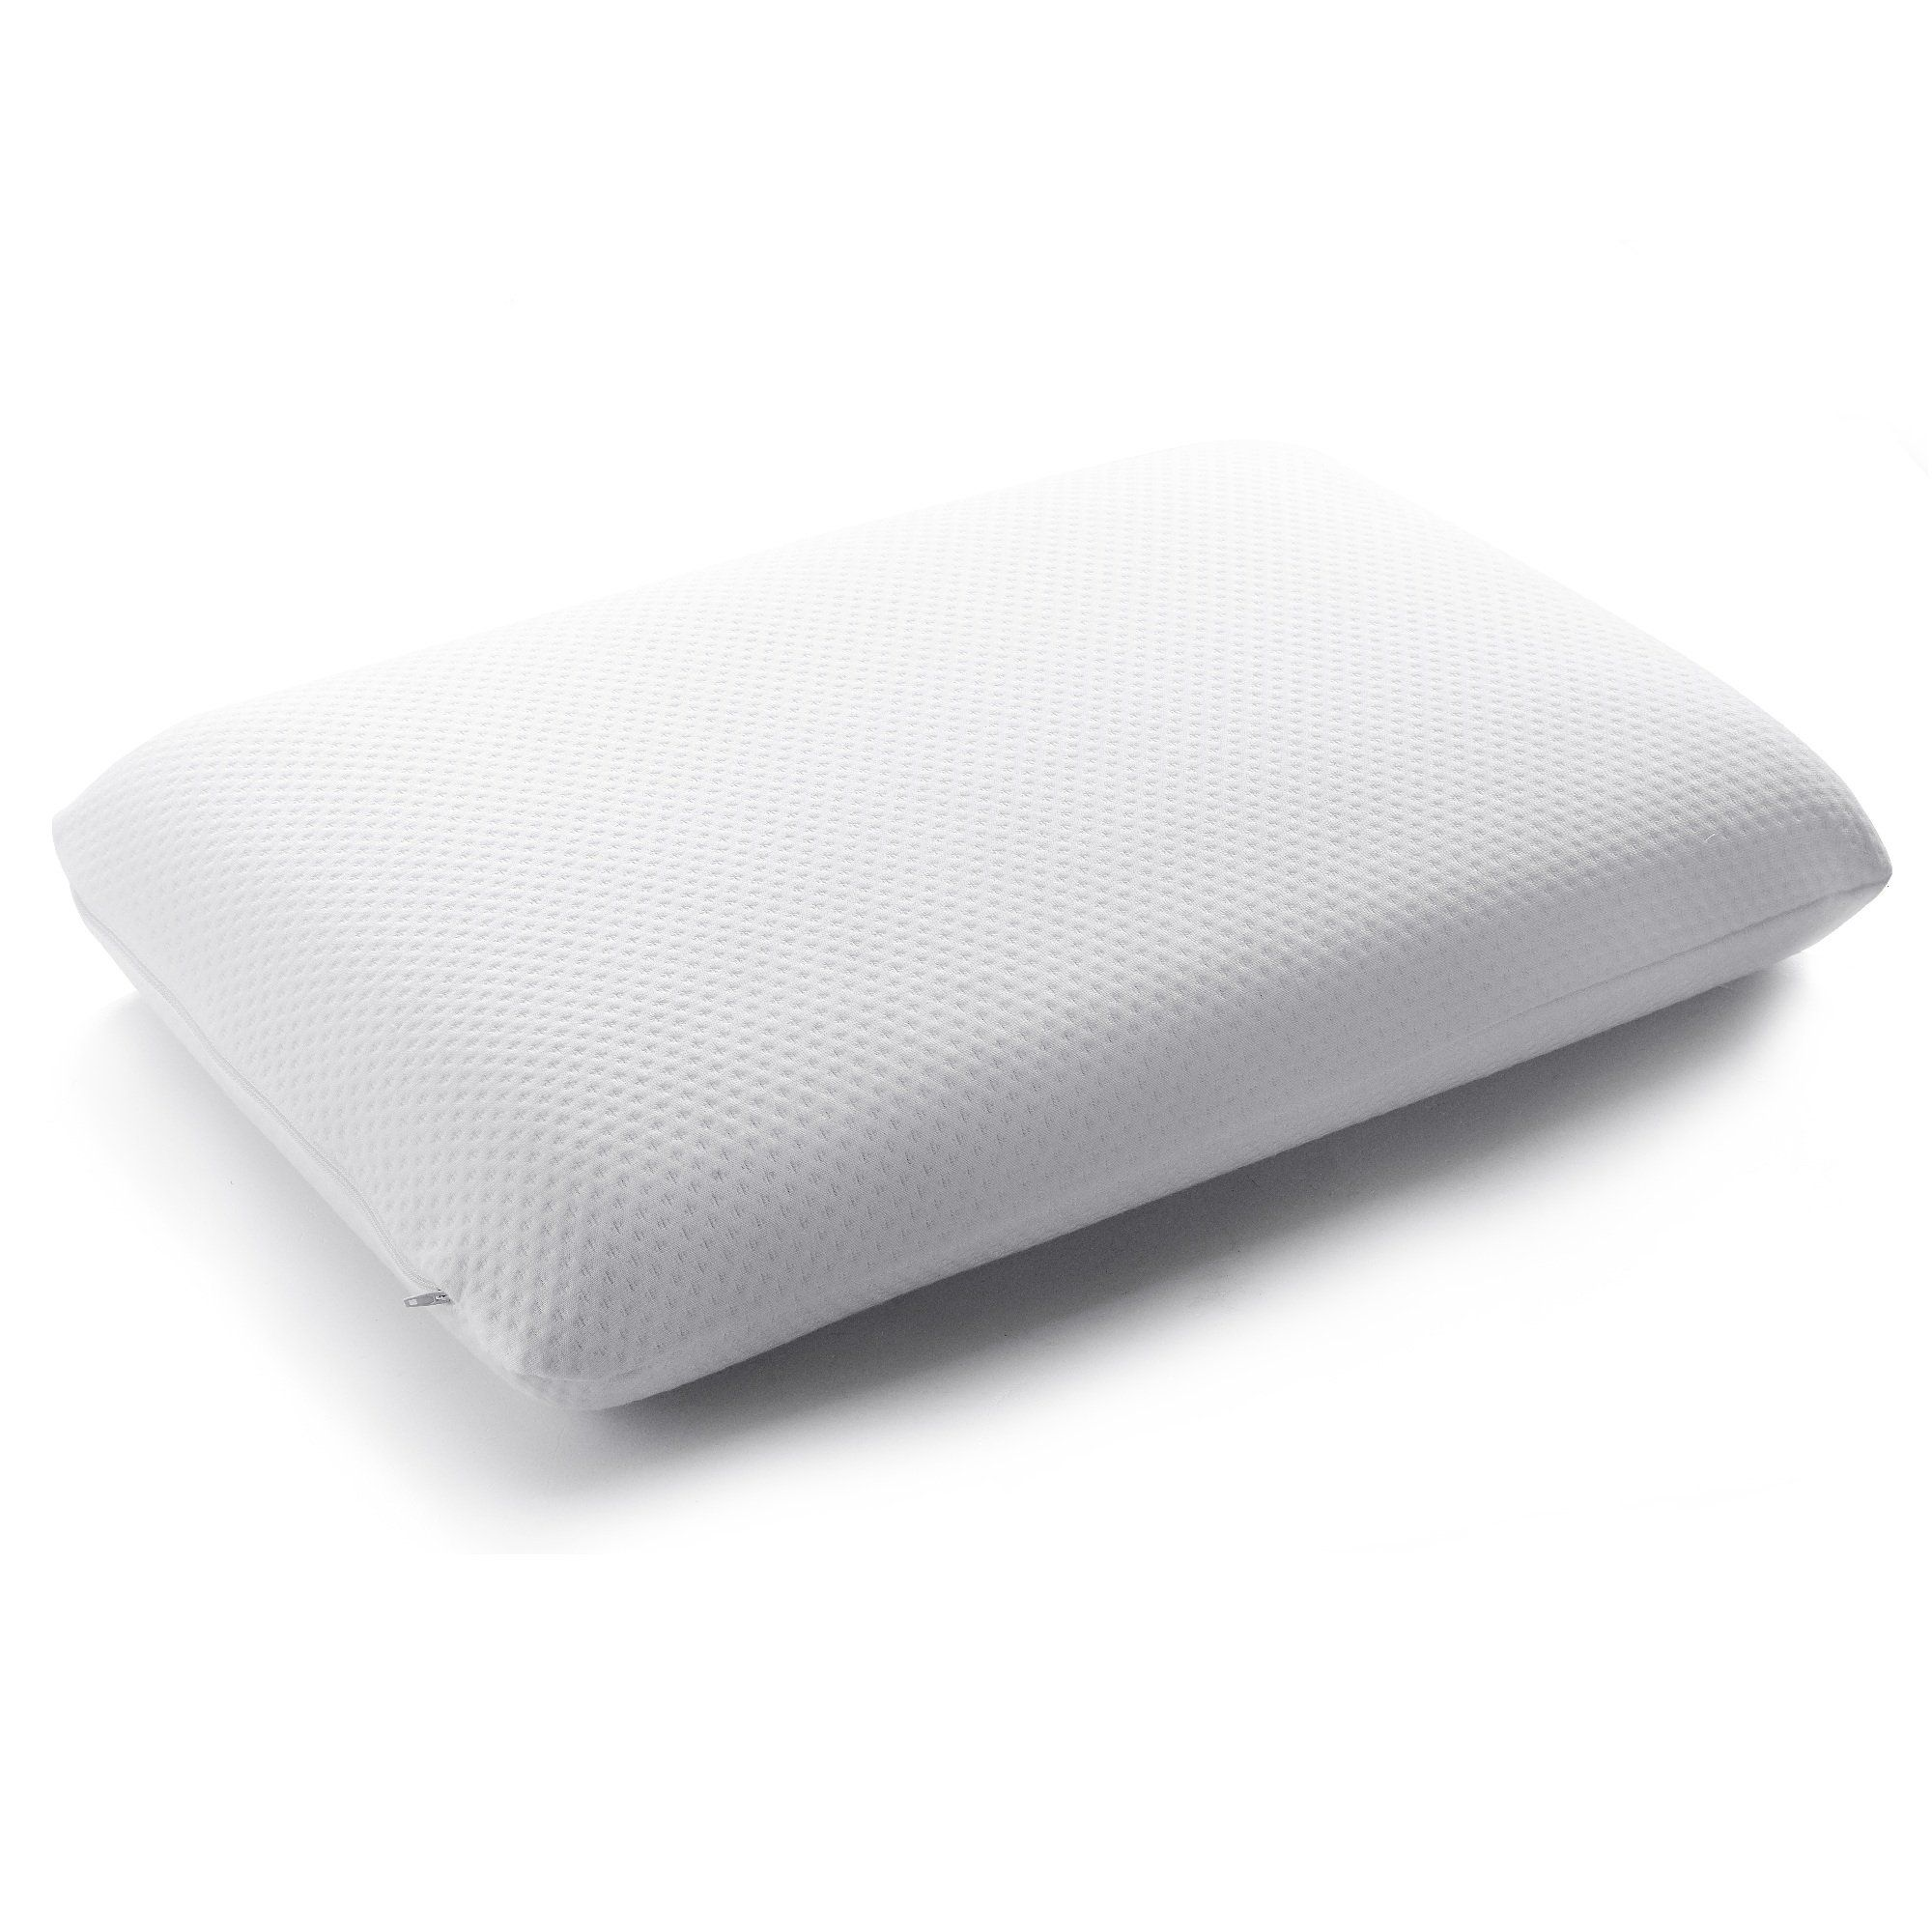 sleep from pillow natural for pin other materials therapeutic unlike made it pillows